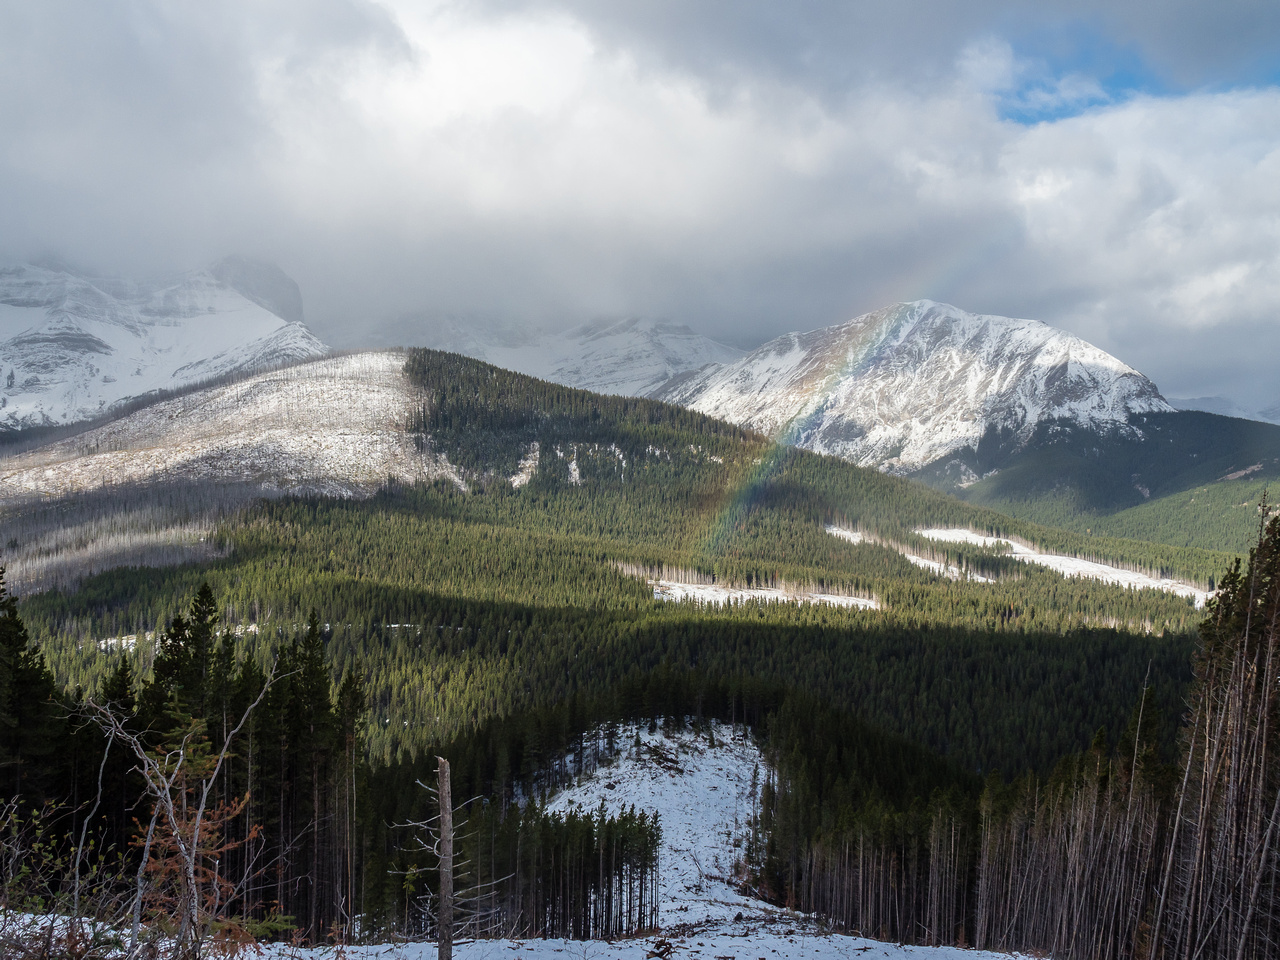 A rain (snow?) bow in front of Mount McLaren as I continue my descent.